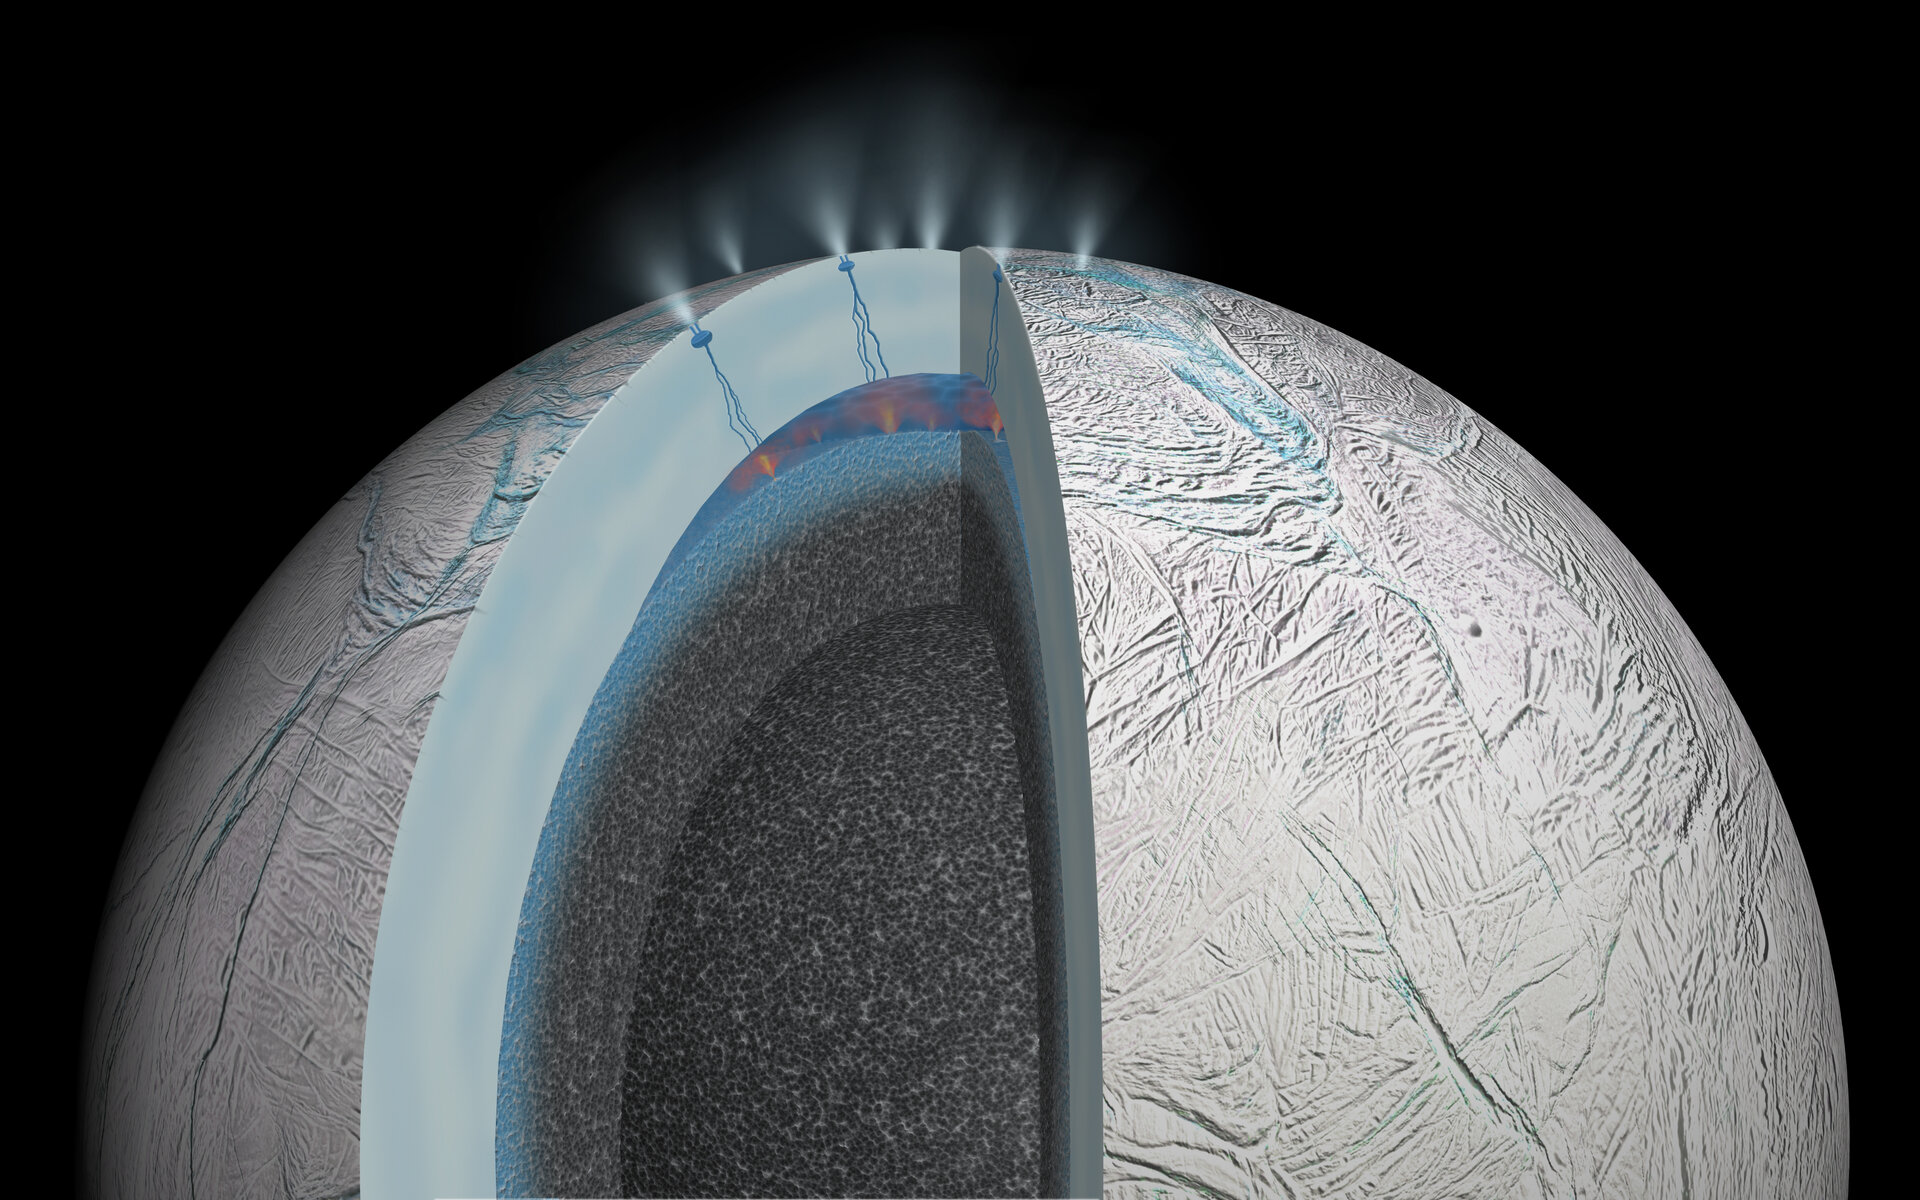 Hydrothermal activity on Enceladus